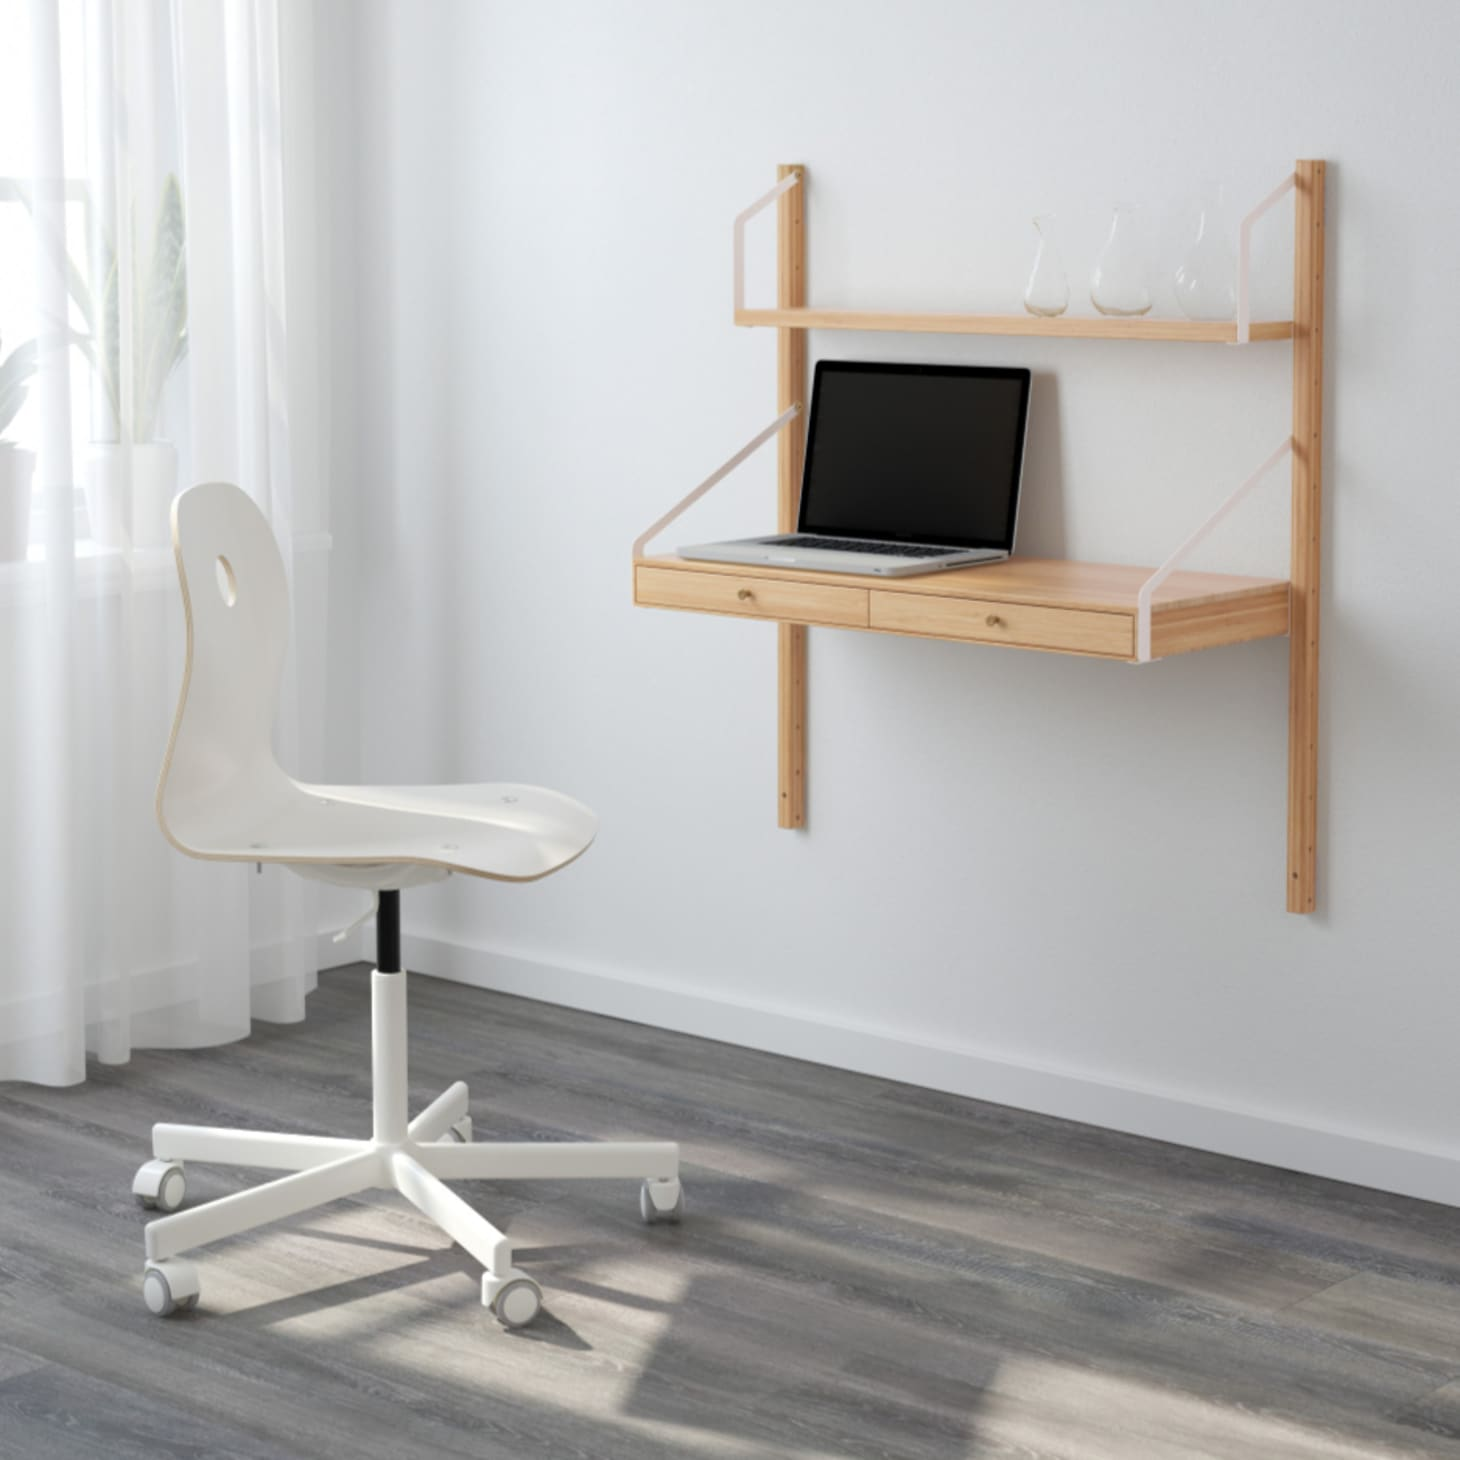 The Best Desks for Small Spaces - Small Space Desks ...